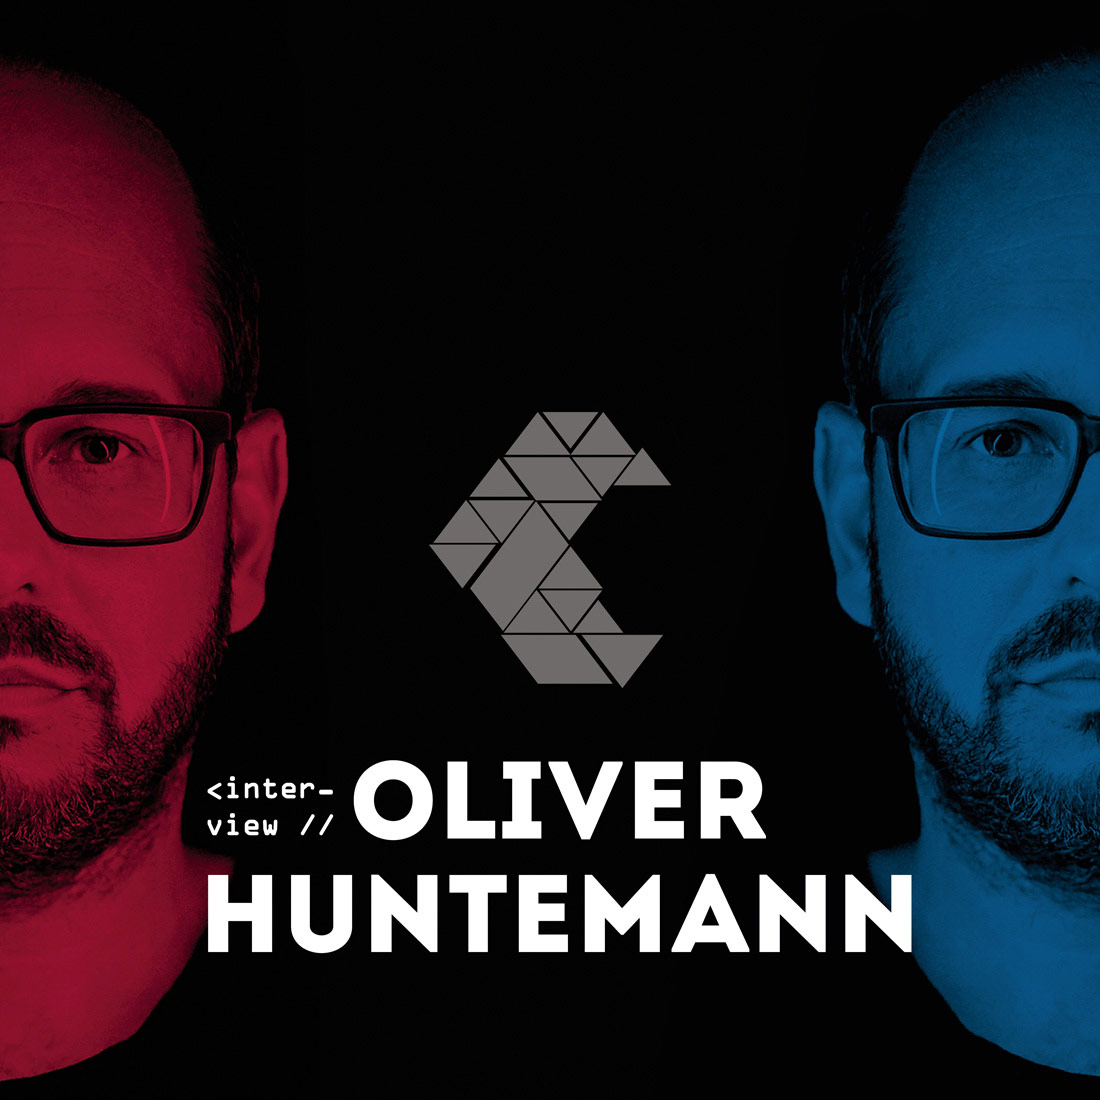 Oliver-Huntemann-The-Sound-Clique-Interview-cover.jpg